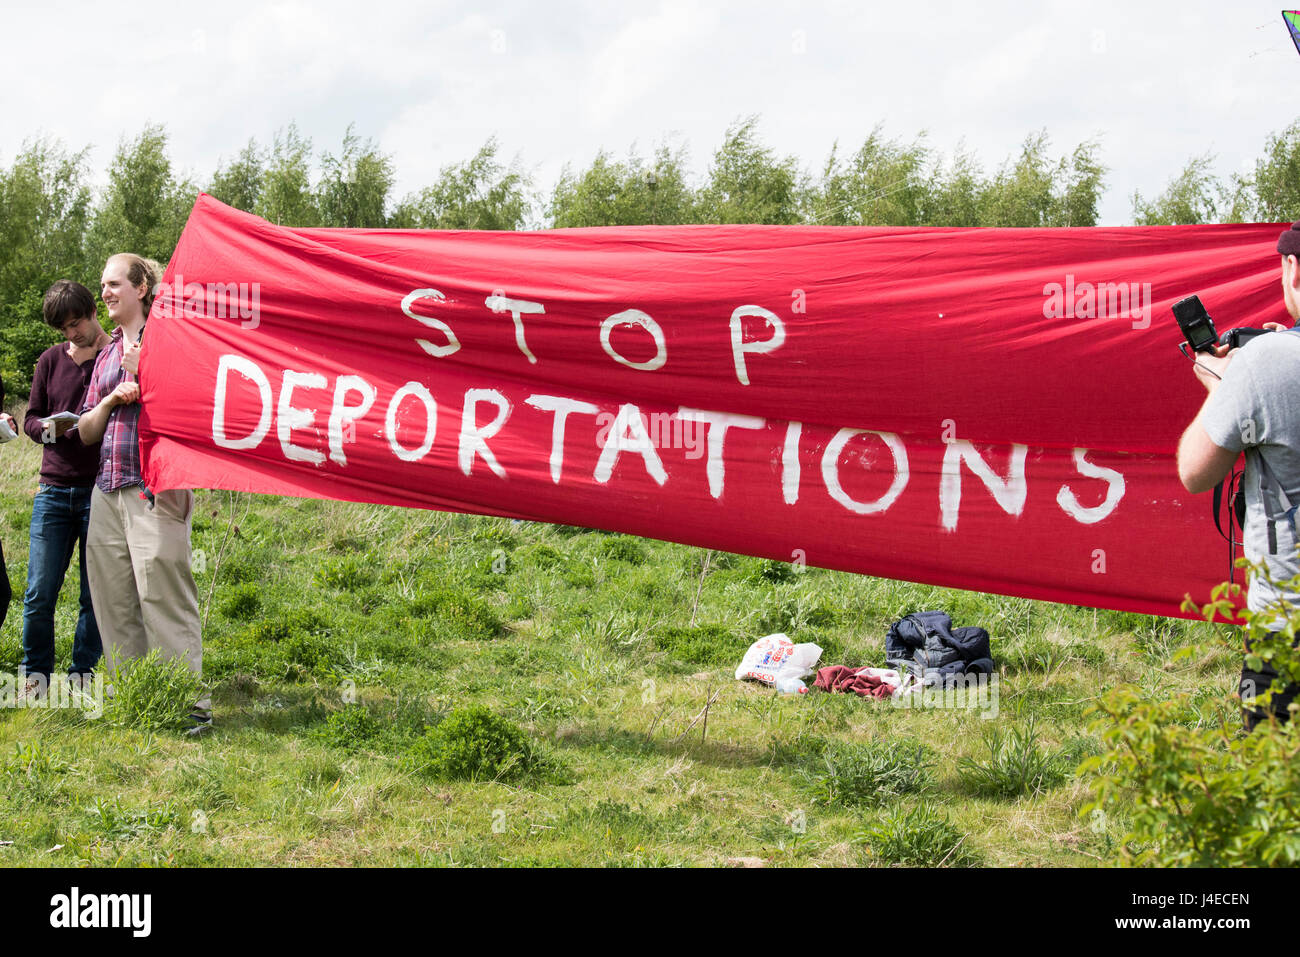 Bedfordshire, UK. 13th May 2017. Several hundred protesters have gathered at the Yarl's Wood Immigration Detention - Stock Image